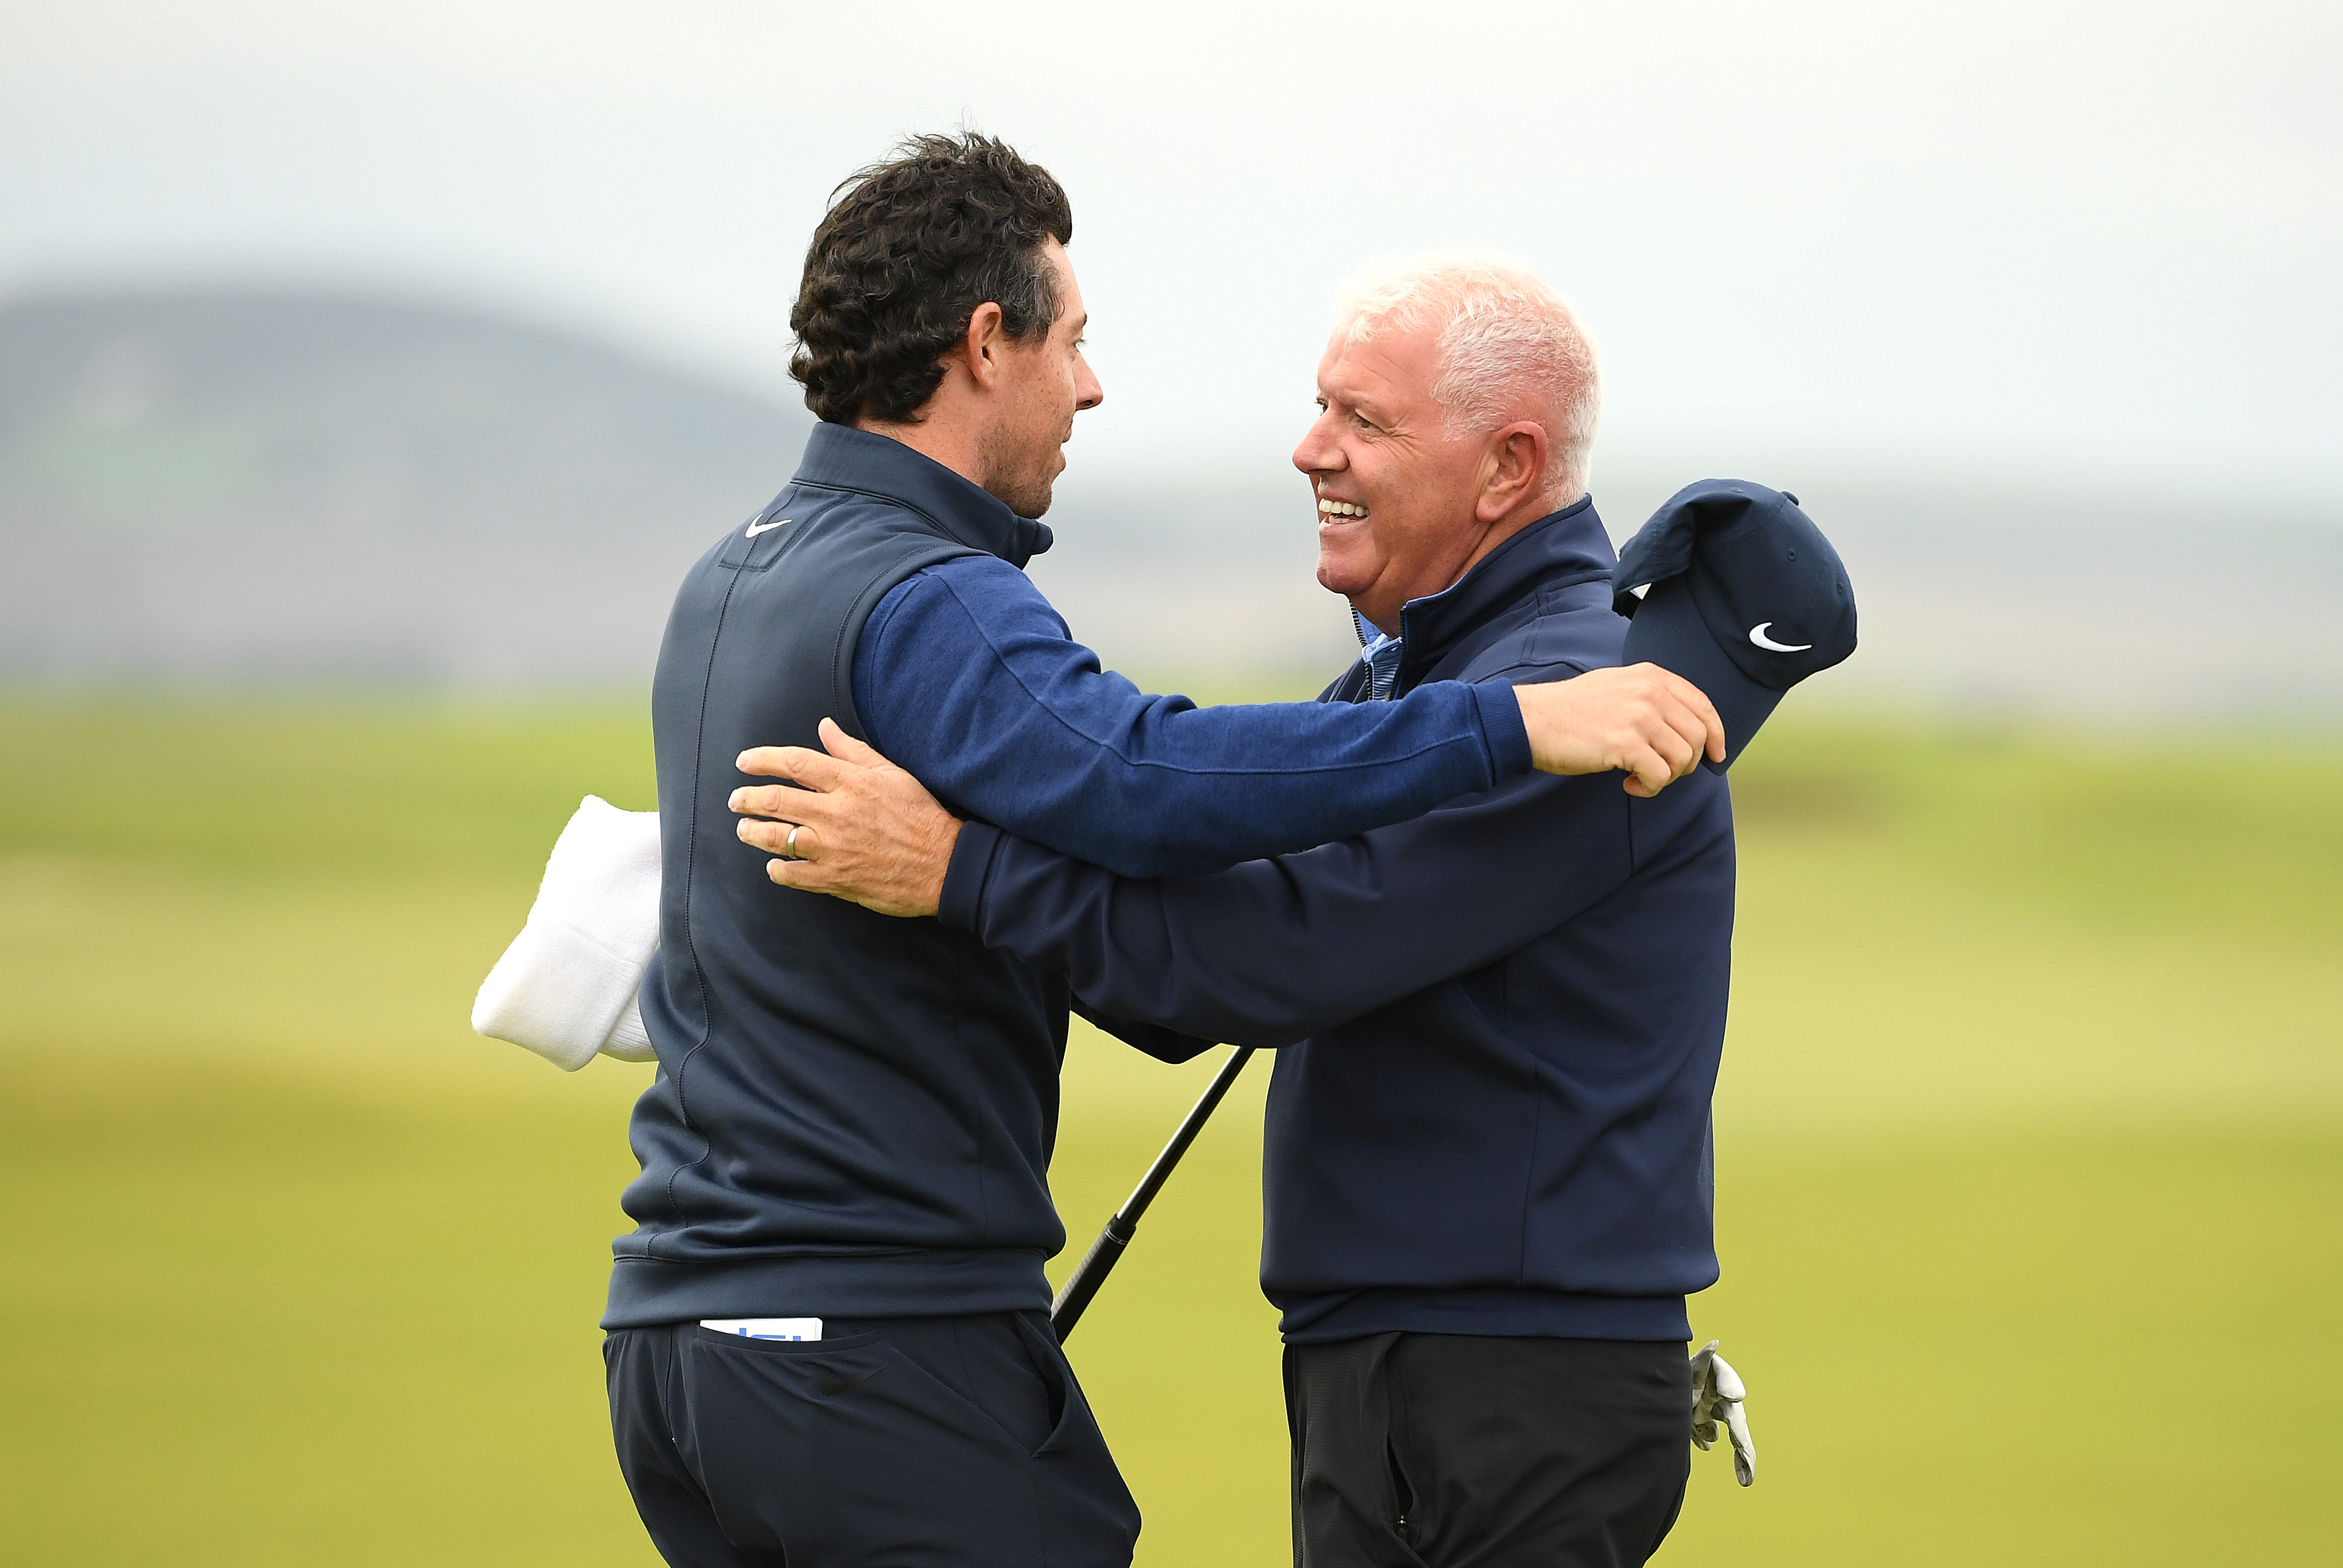 Golfer Rory McIlroy with dad Gerry